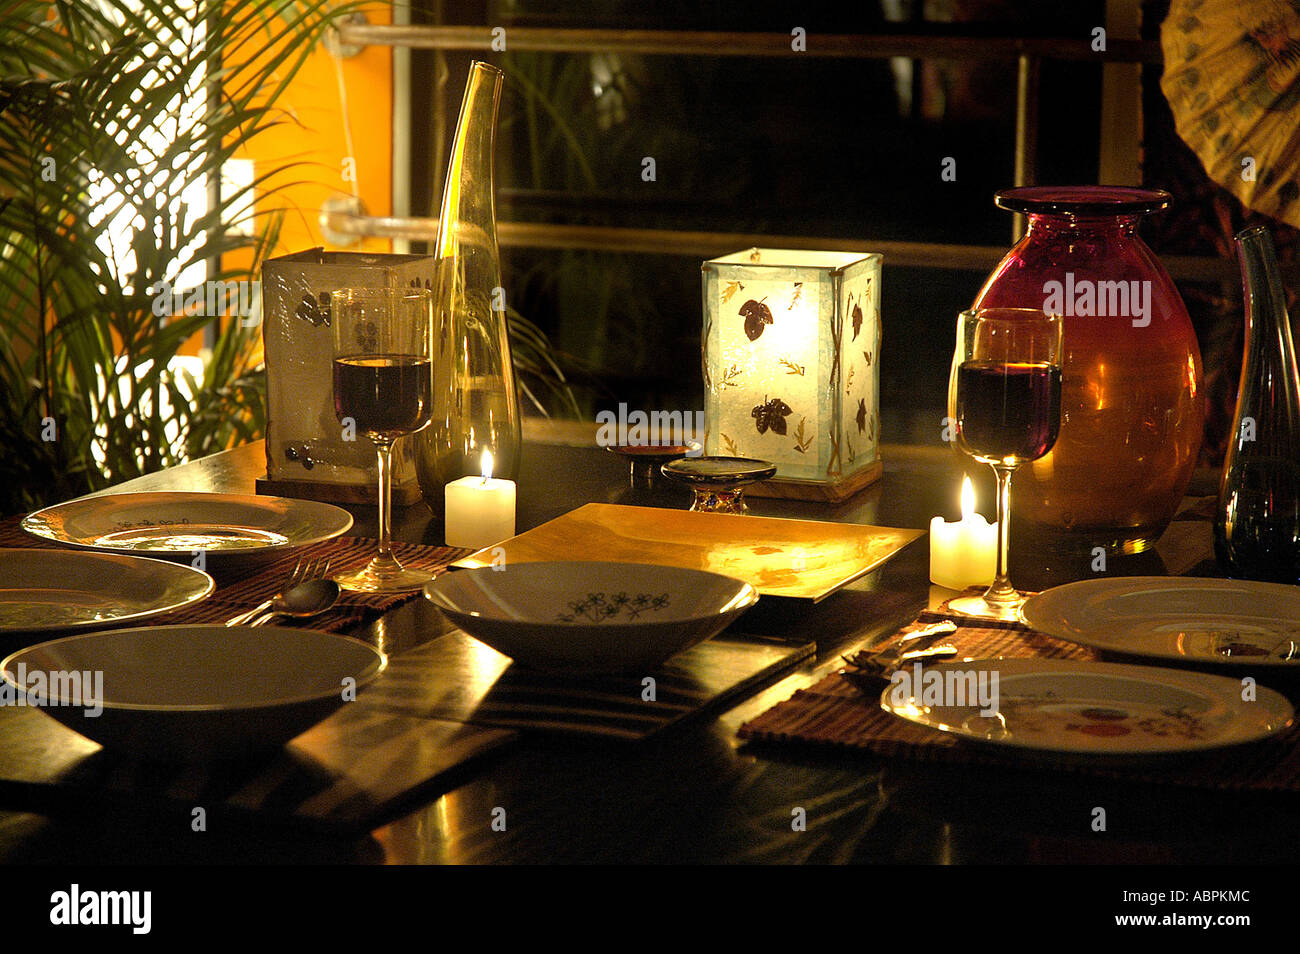 Candle Light Dinner Table Setting Part - 27: SUB79060 Red Wine In Glasses Candles Table Setting For Cozy Intimate  Romantic Candle Light Dinner Mellow Mood Shot